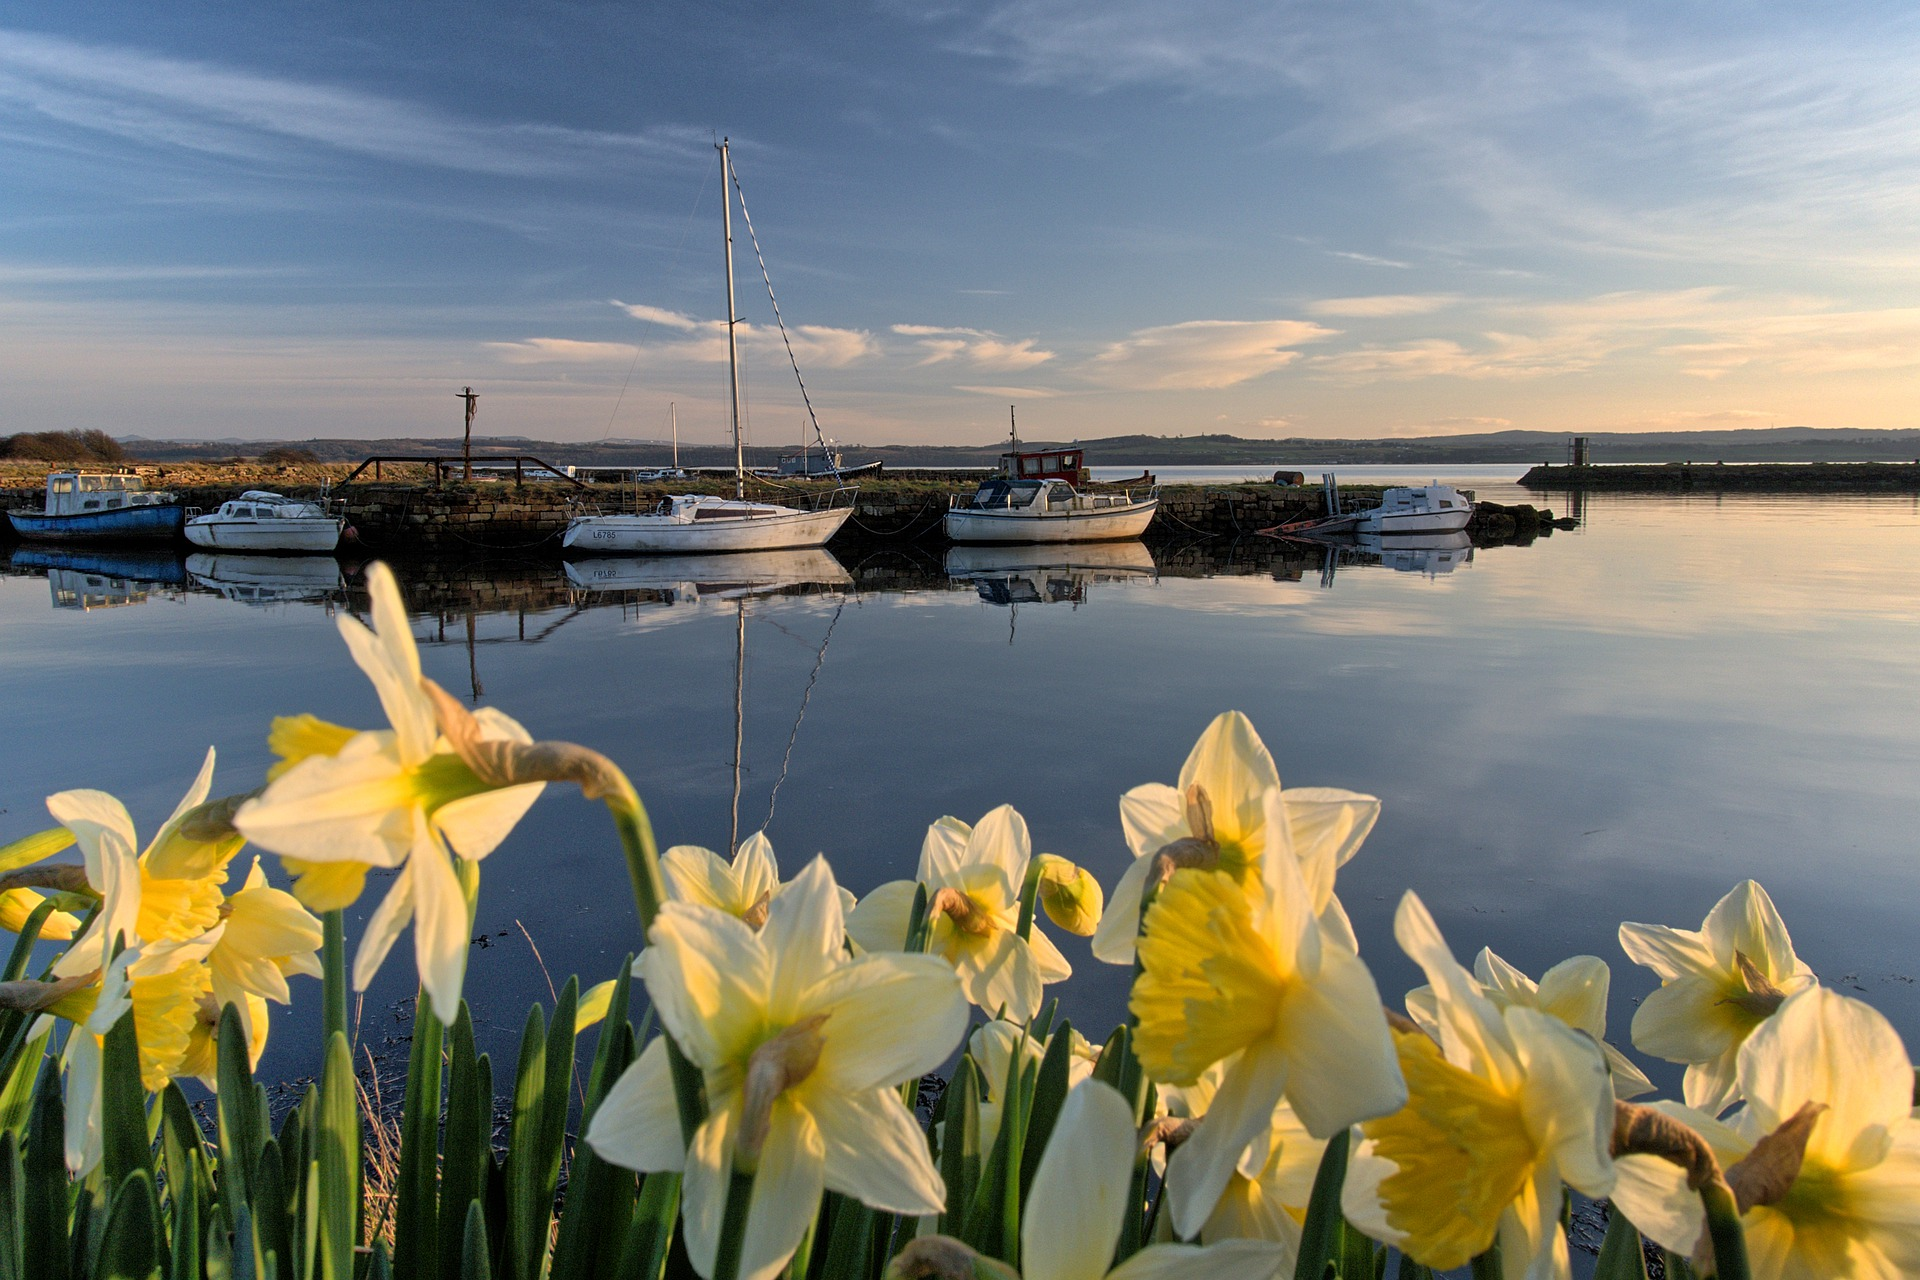 lake-boats-flowers-retirement planning and retirement expenses